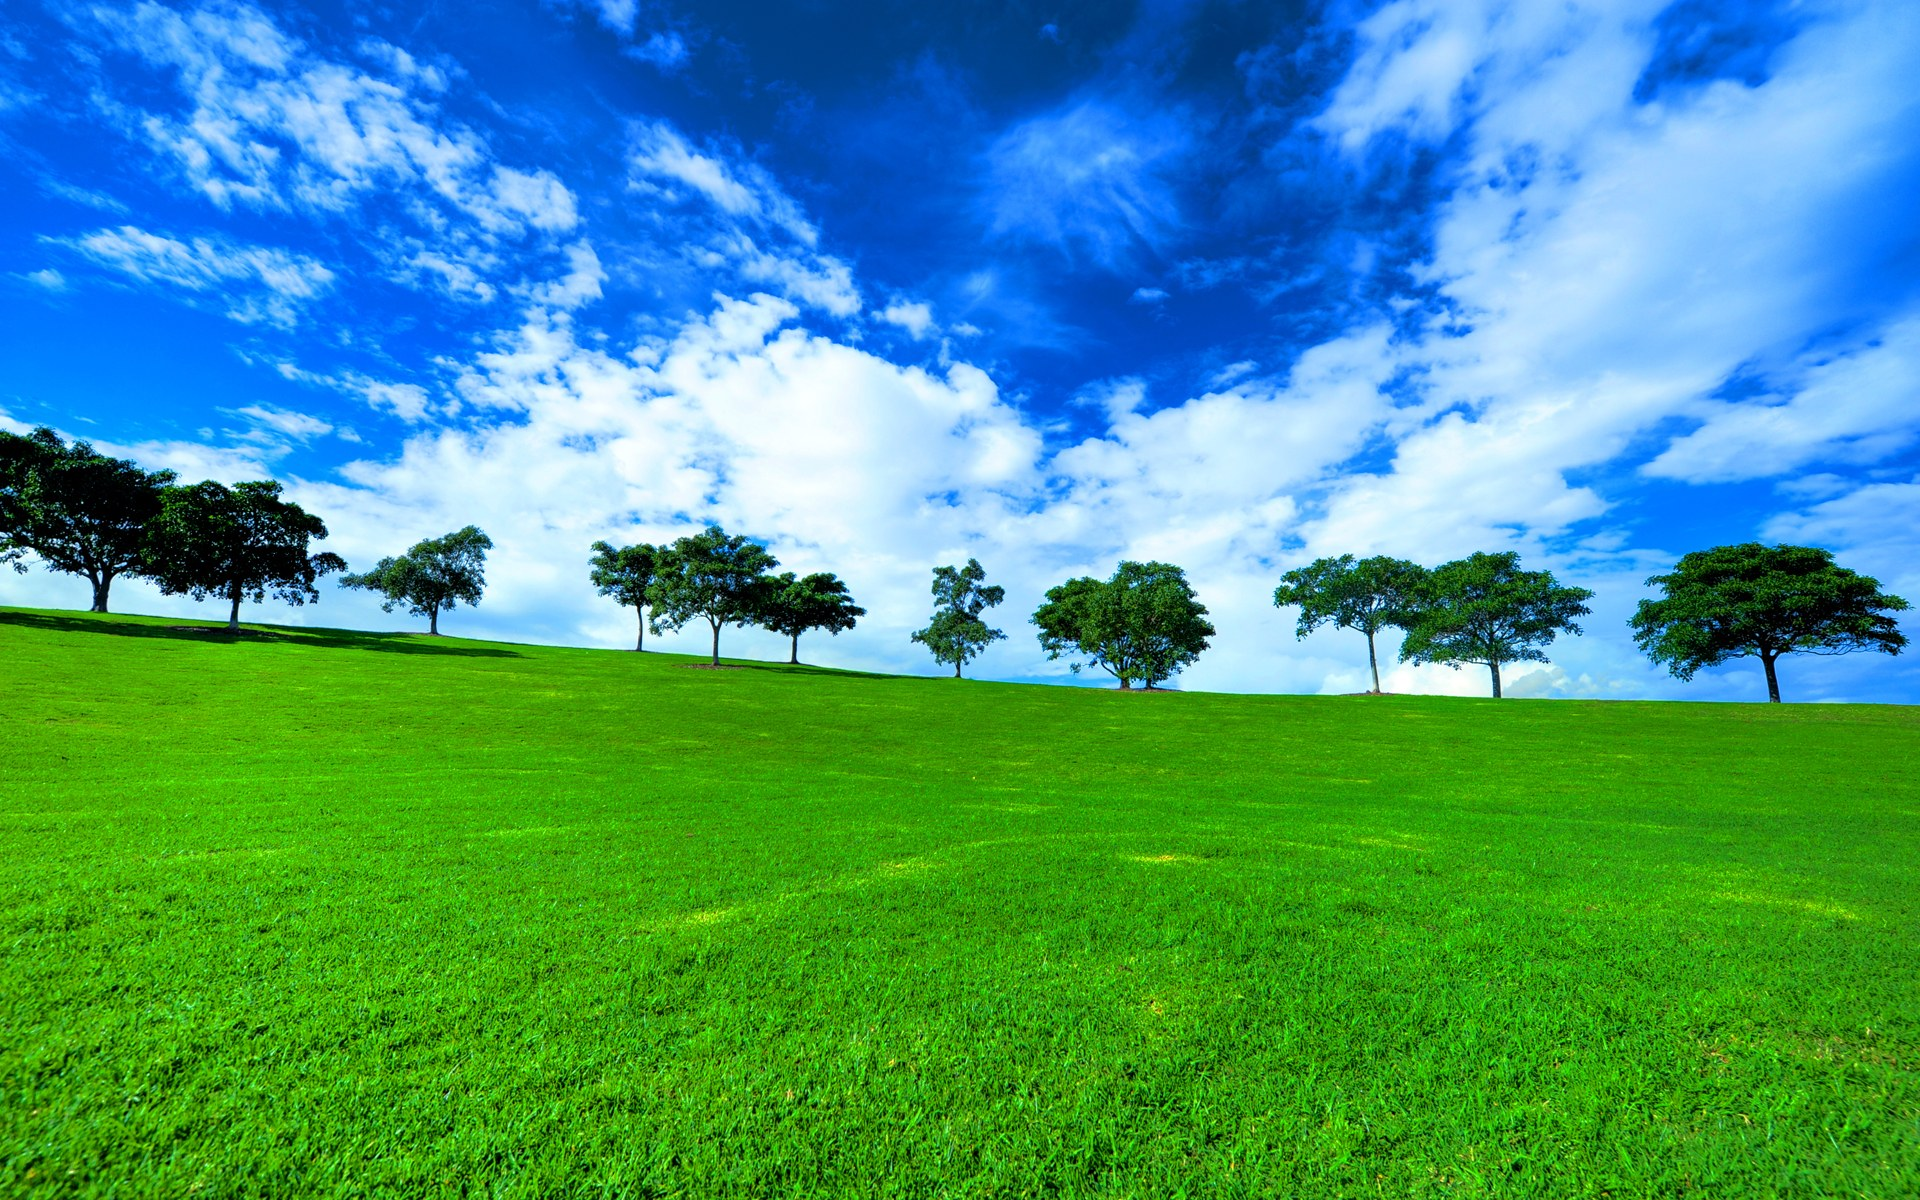 Green Landscape Wallpaper 1920x1200 53372